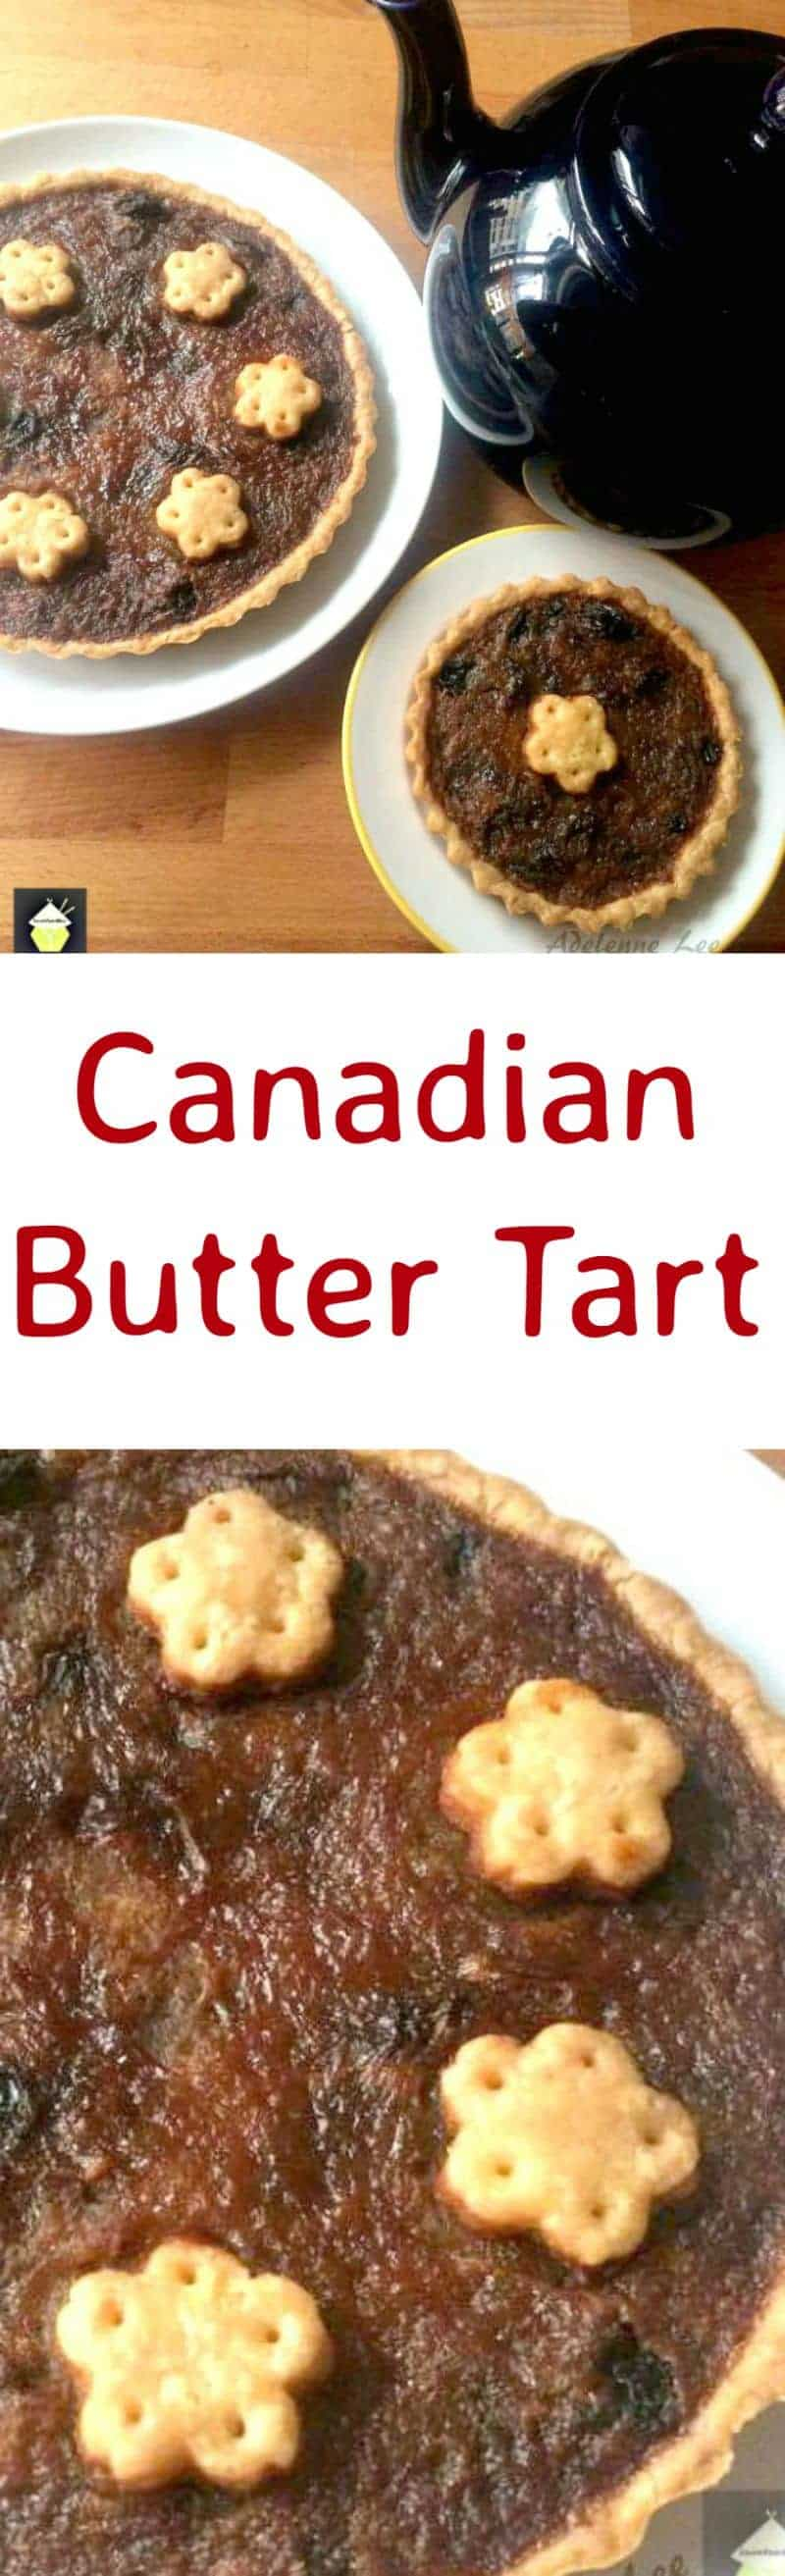 Canadian Butter Tart. A wonderful butter and raisin tart very famous in Canada!